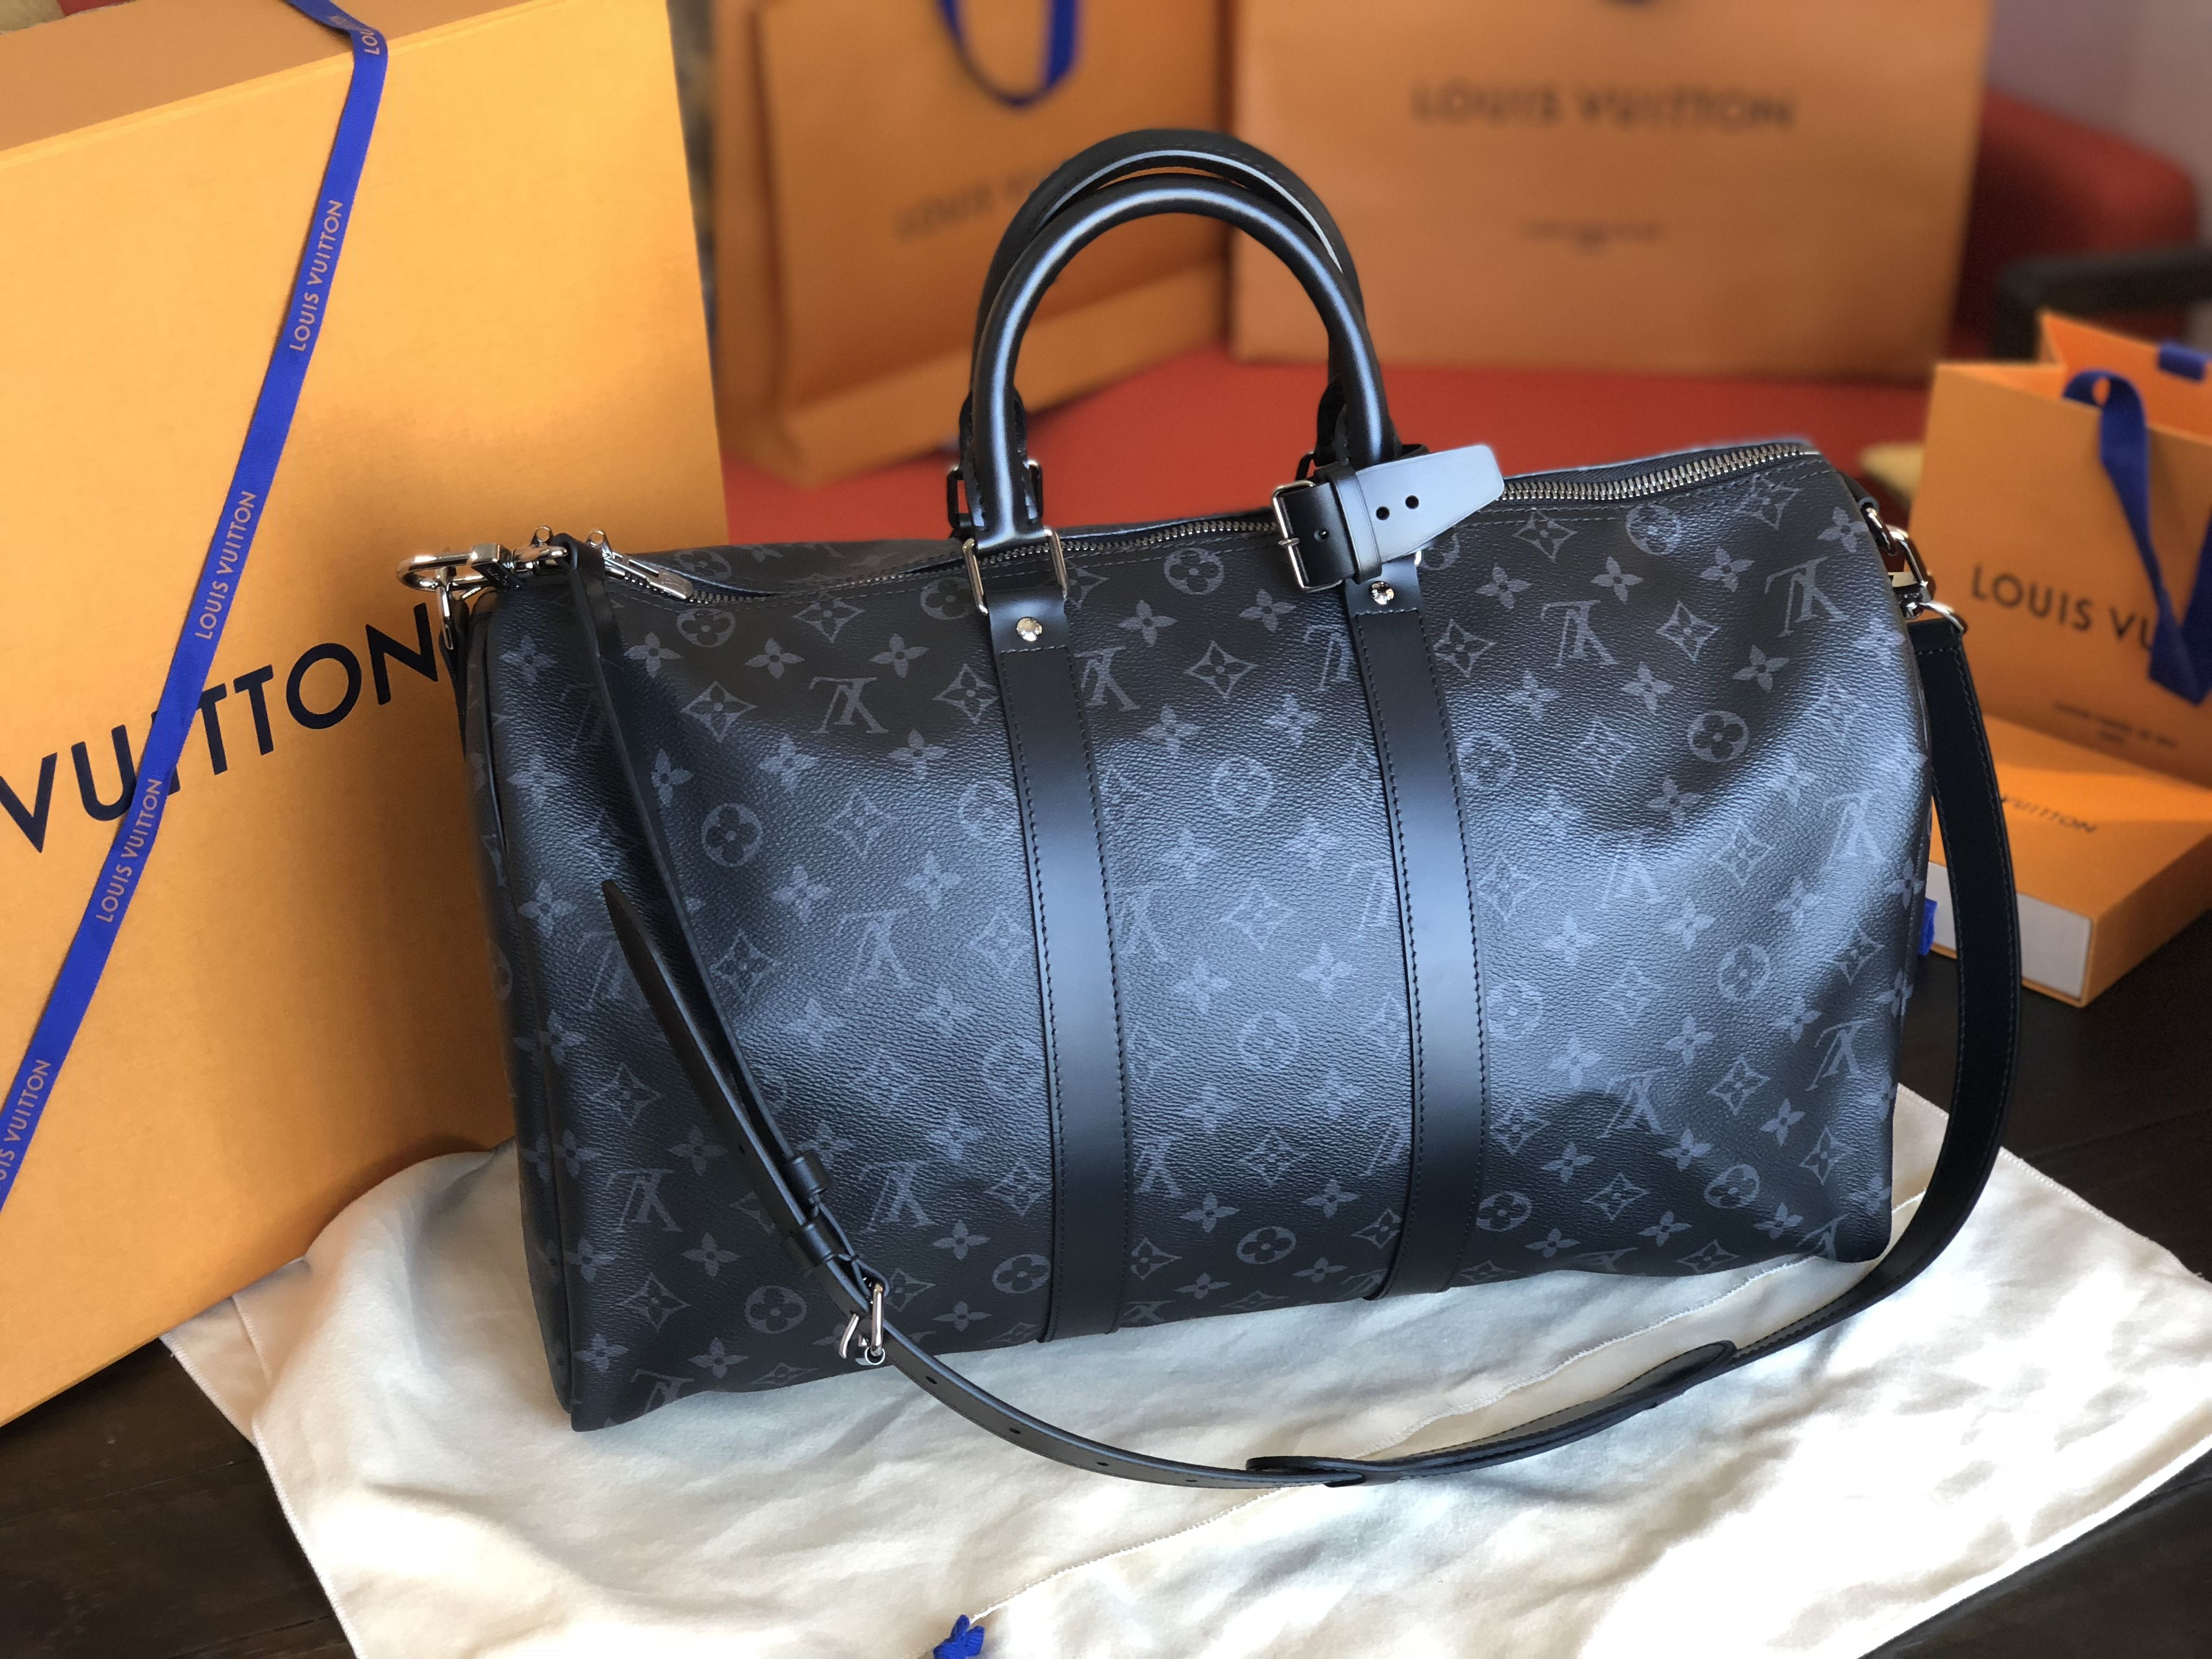 926b1155cc14 Louis Vuitton Keepall 45 Bandouliere  A man s bag. This video is about Louis  Vuitton